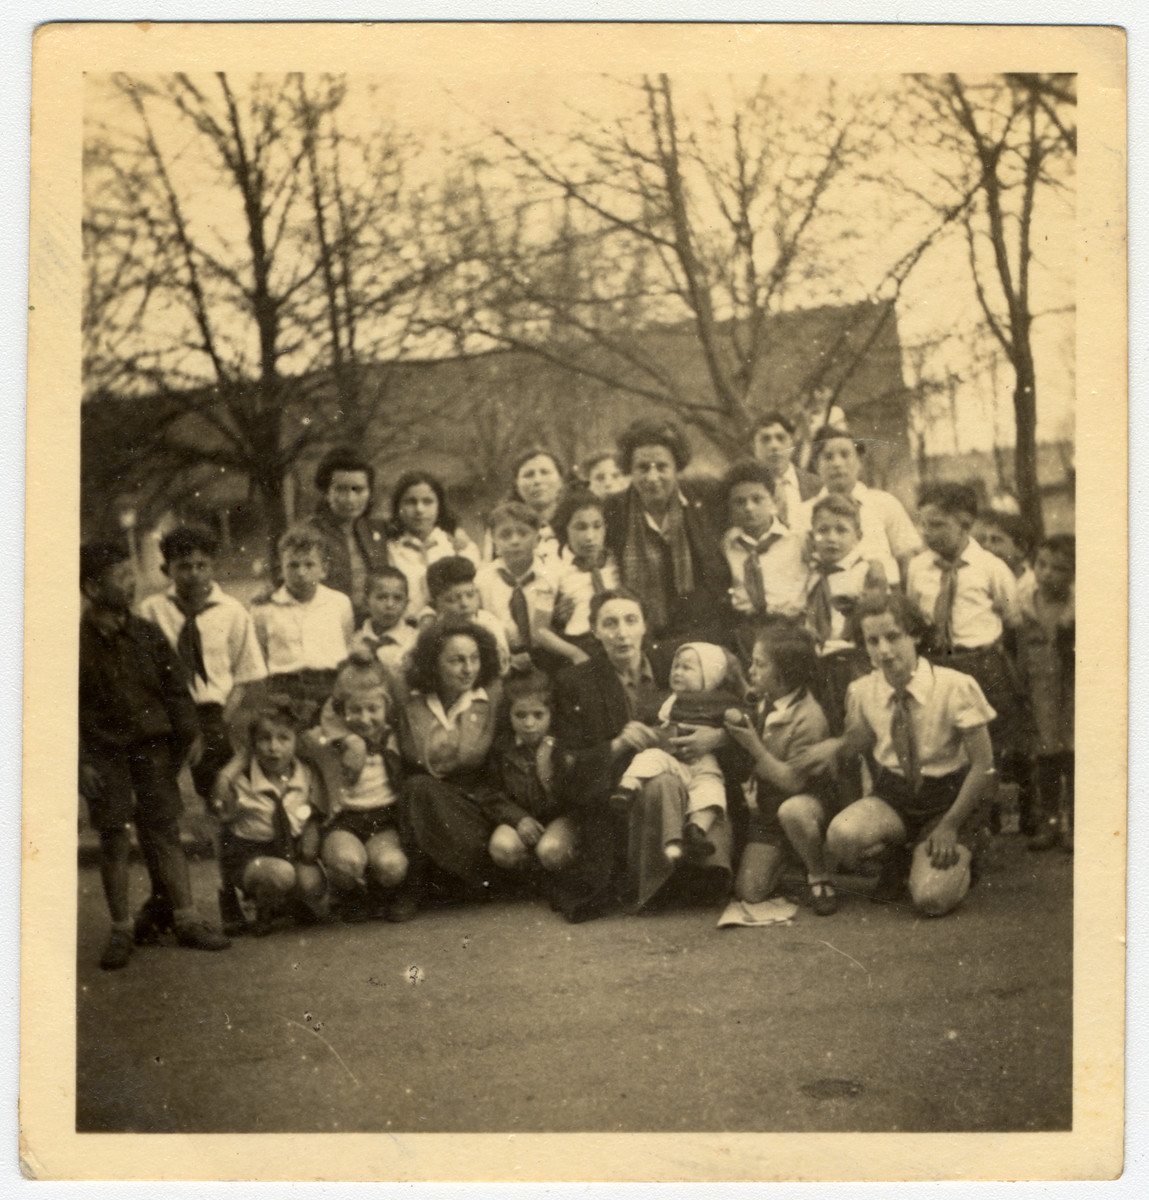 Group portrait of children in an orphanage in Israel.  Among those pictured is Sala Perec (front row, far right).